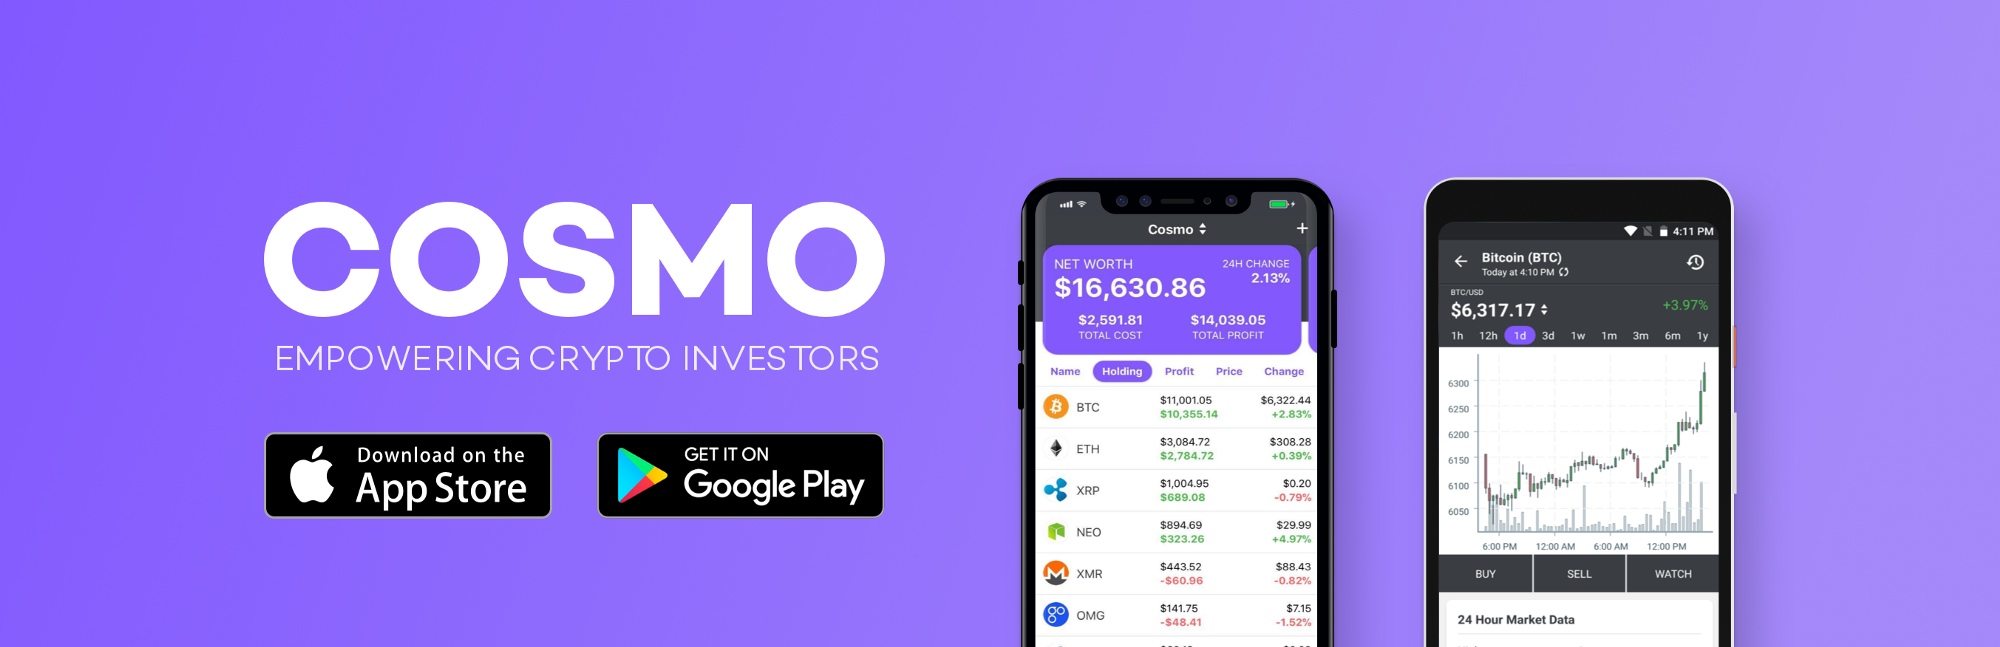 best mobile app for cryptocurrency